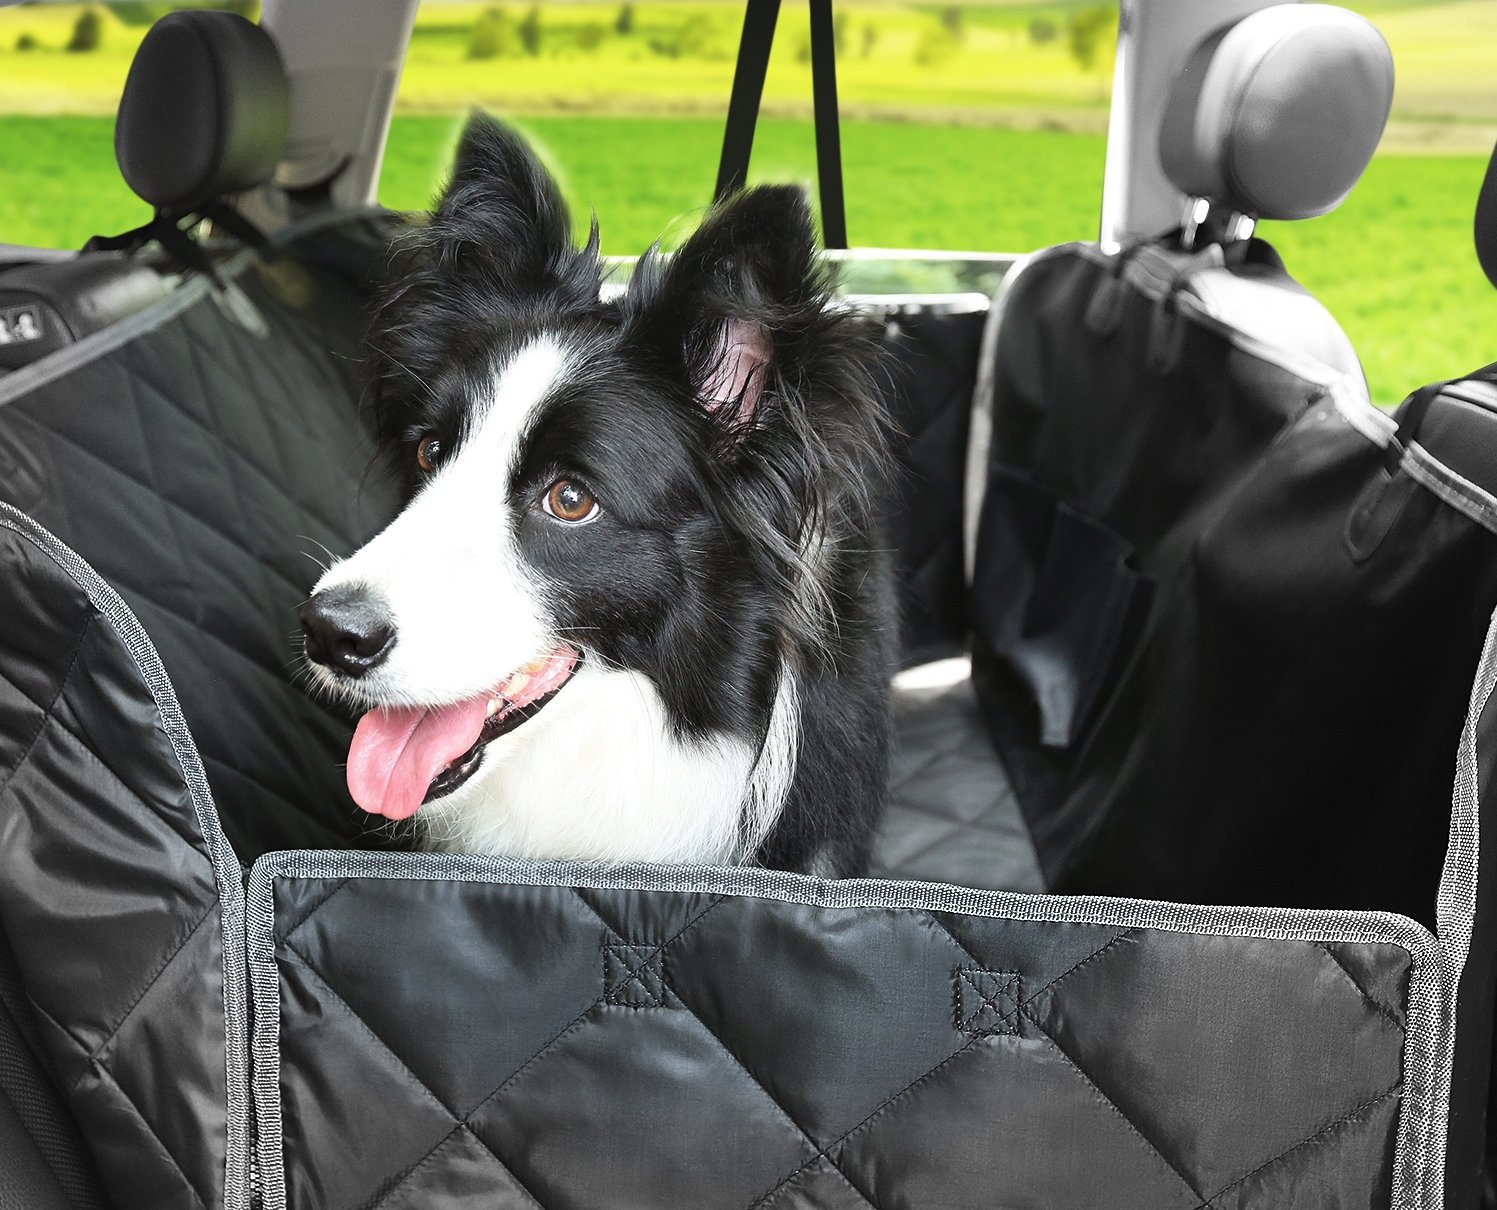 The Best Pet Car Seat Covers In 2018: Reviews & Buying Guide 16